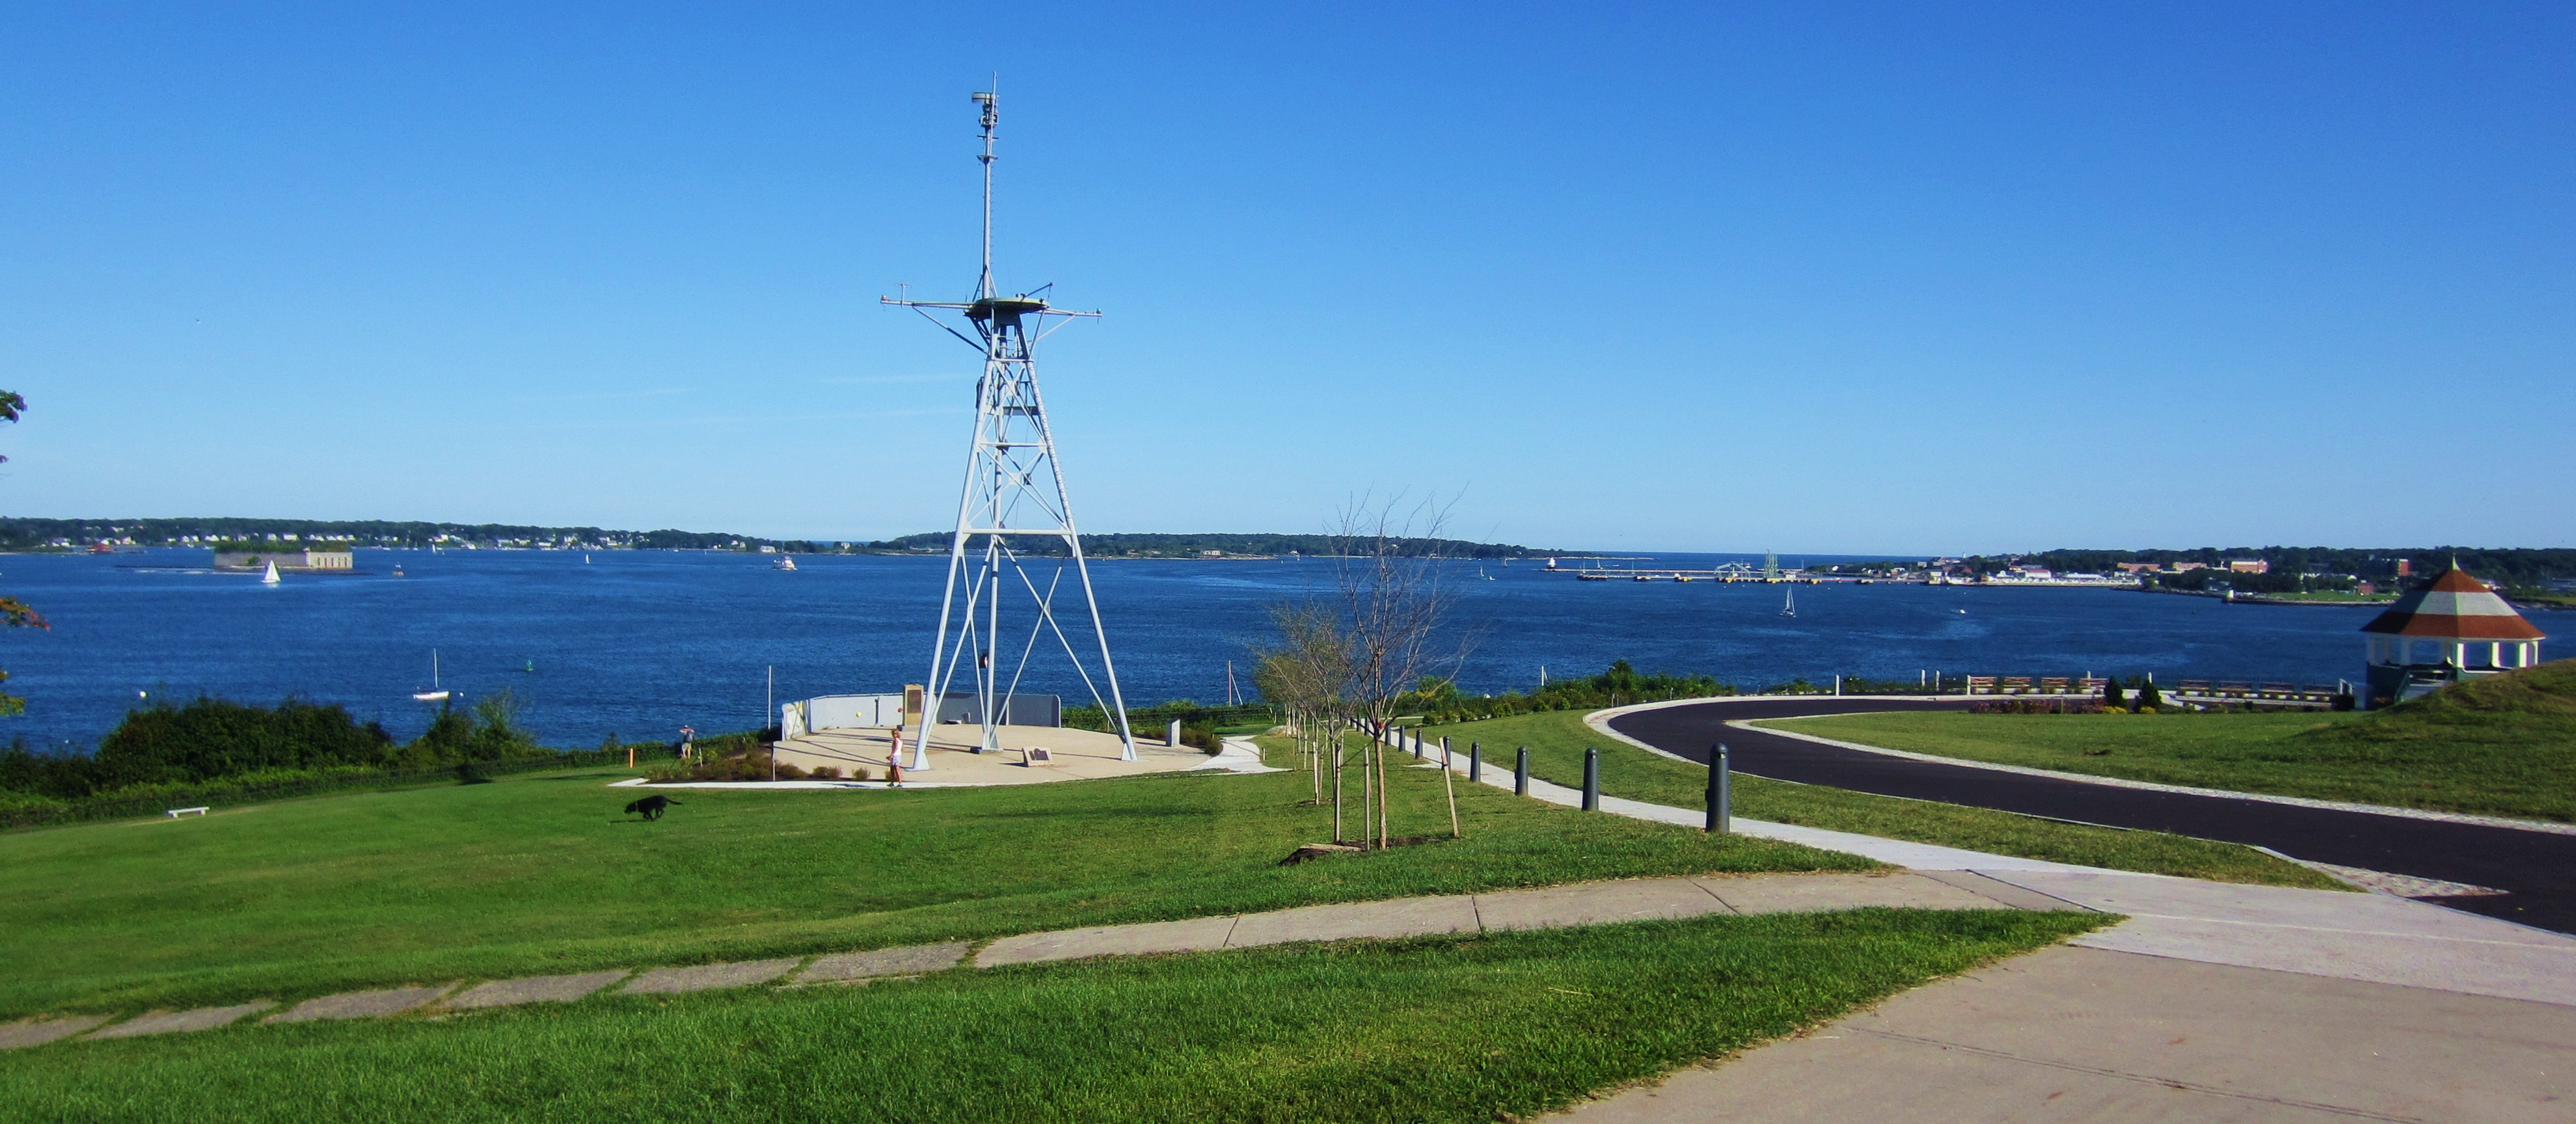 Image result for eastern promenade portland maine